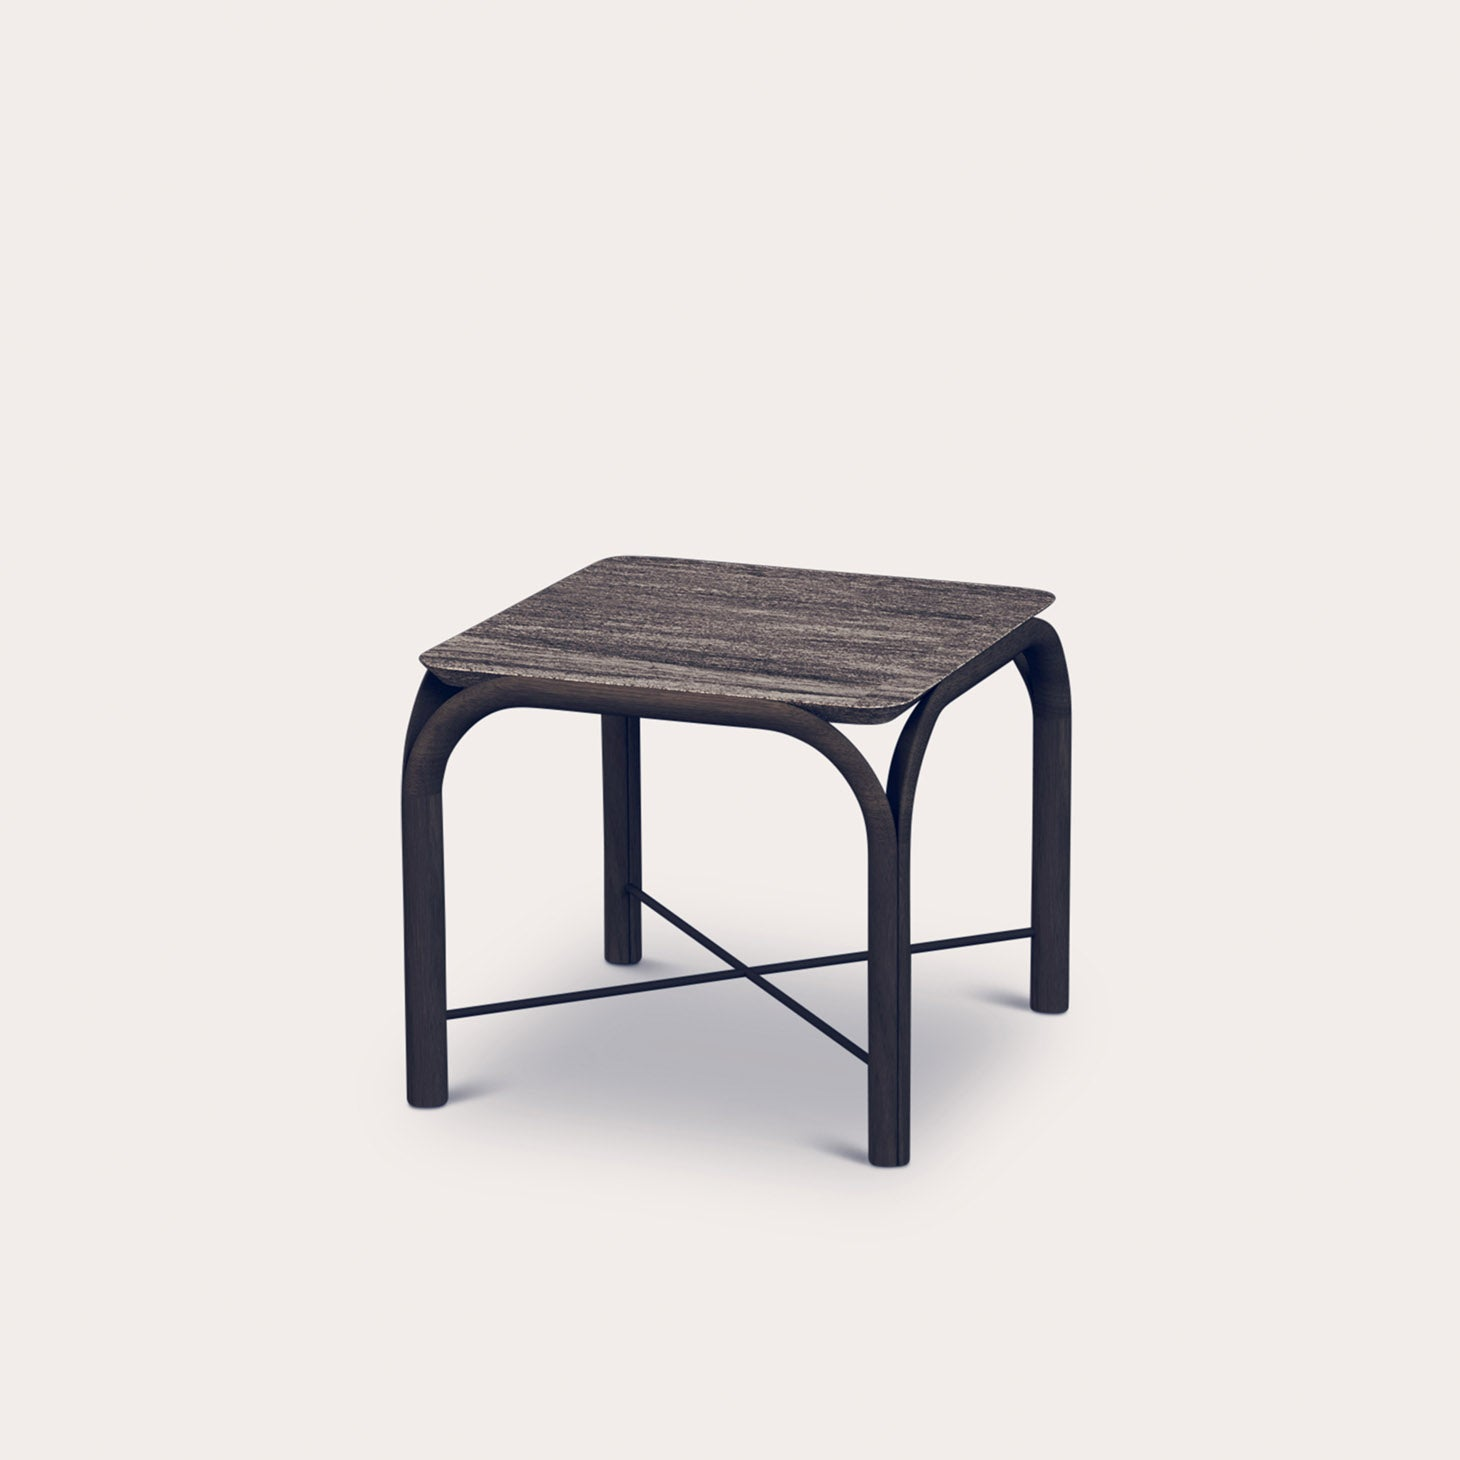 MAUA Tables Bruno Moinard Designer Furniture Sku: 773-230-10033